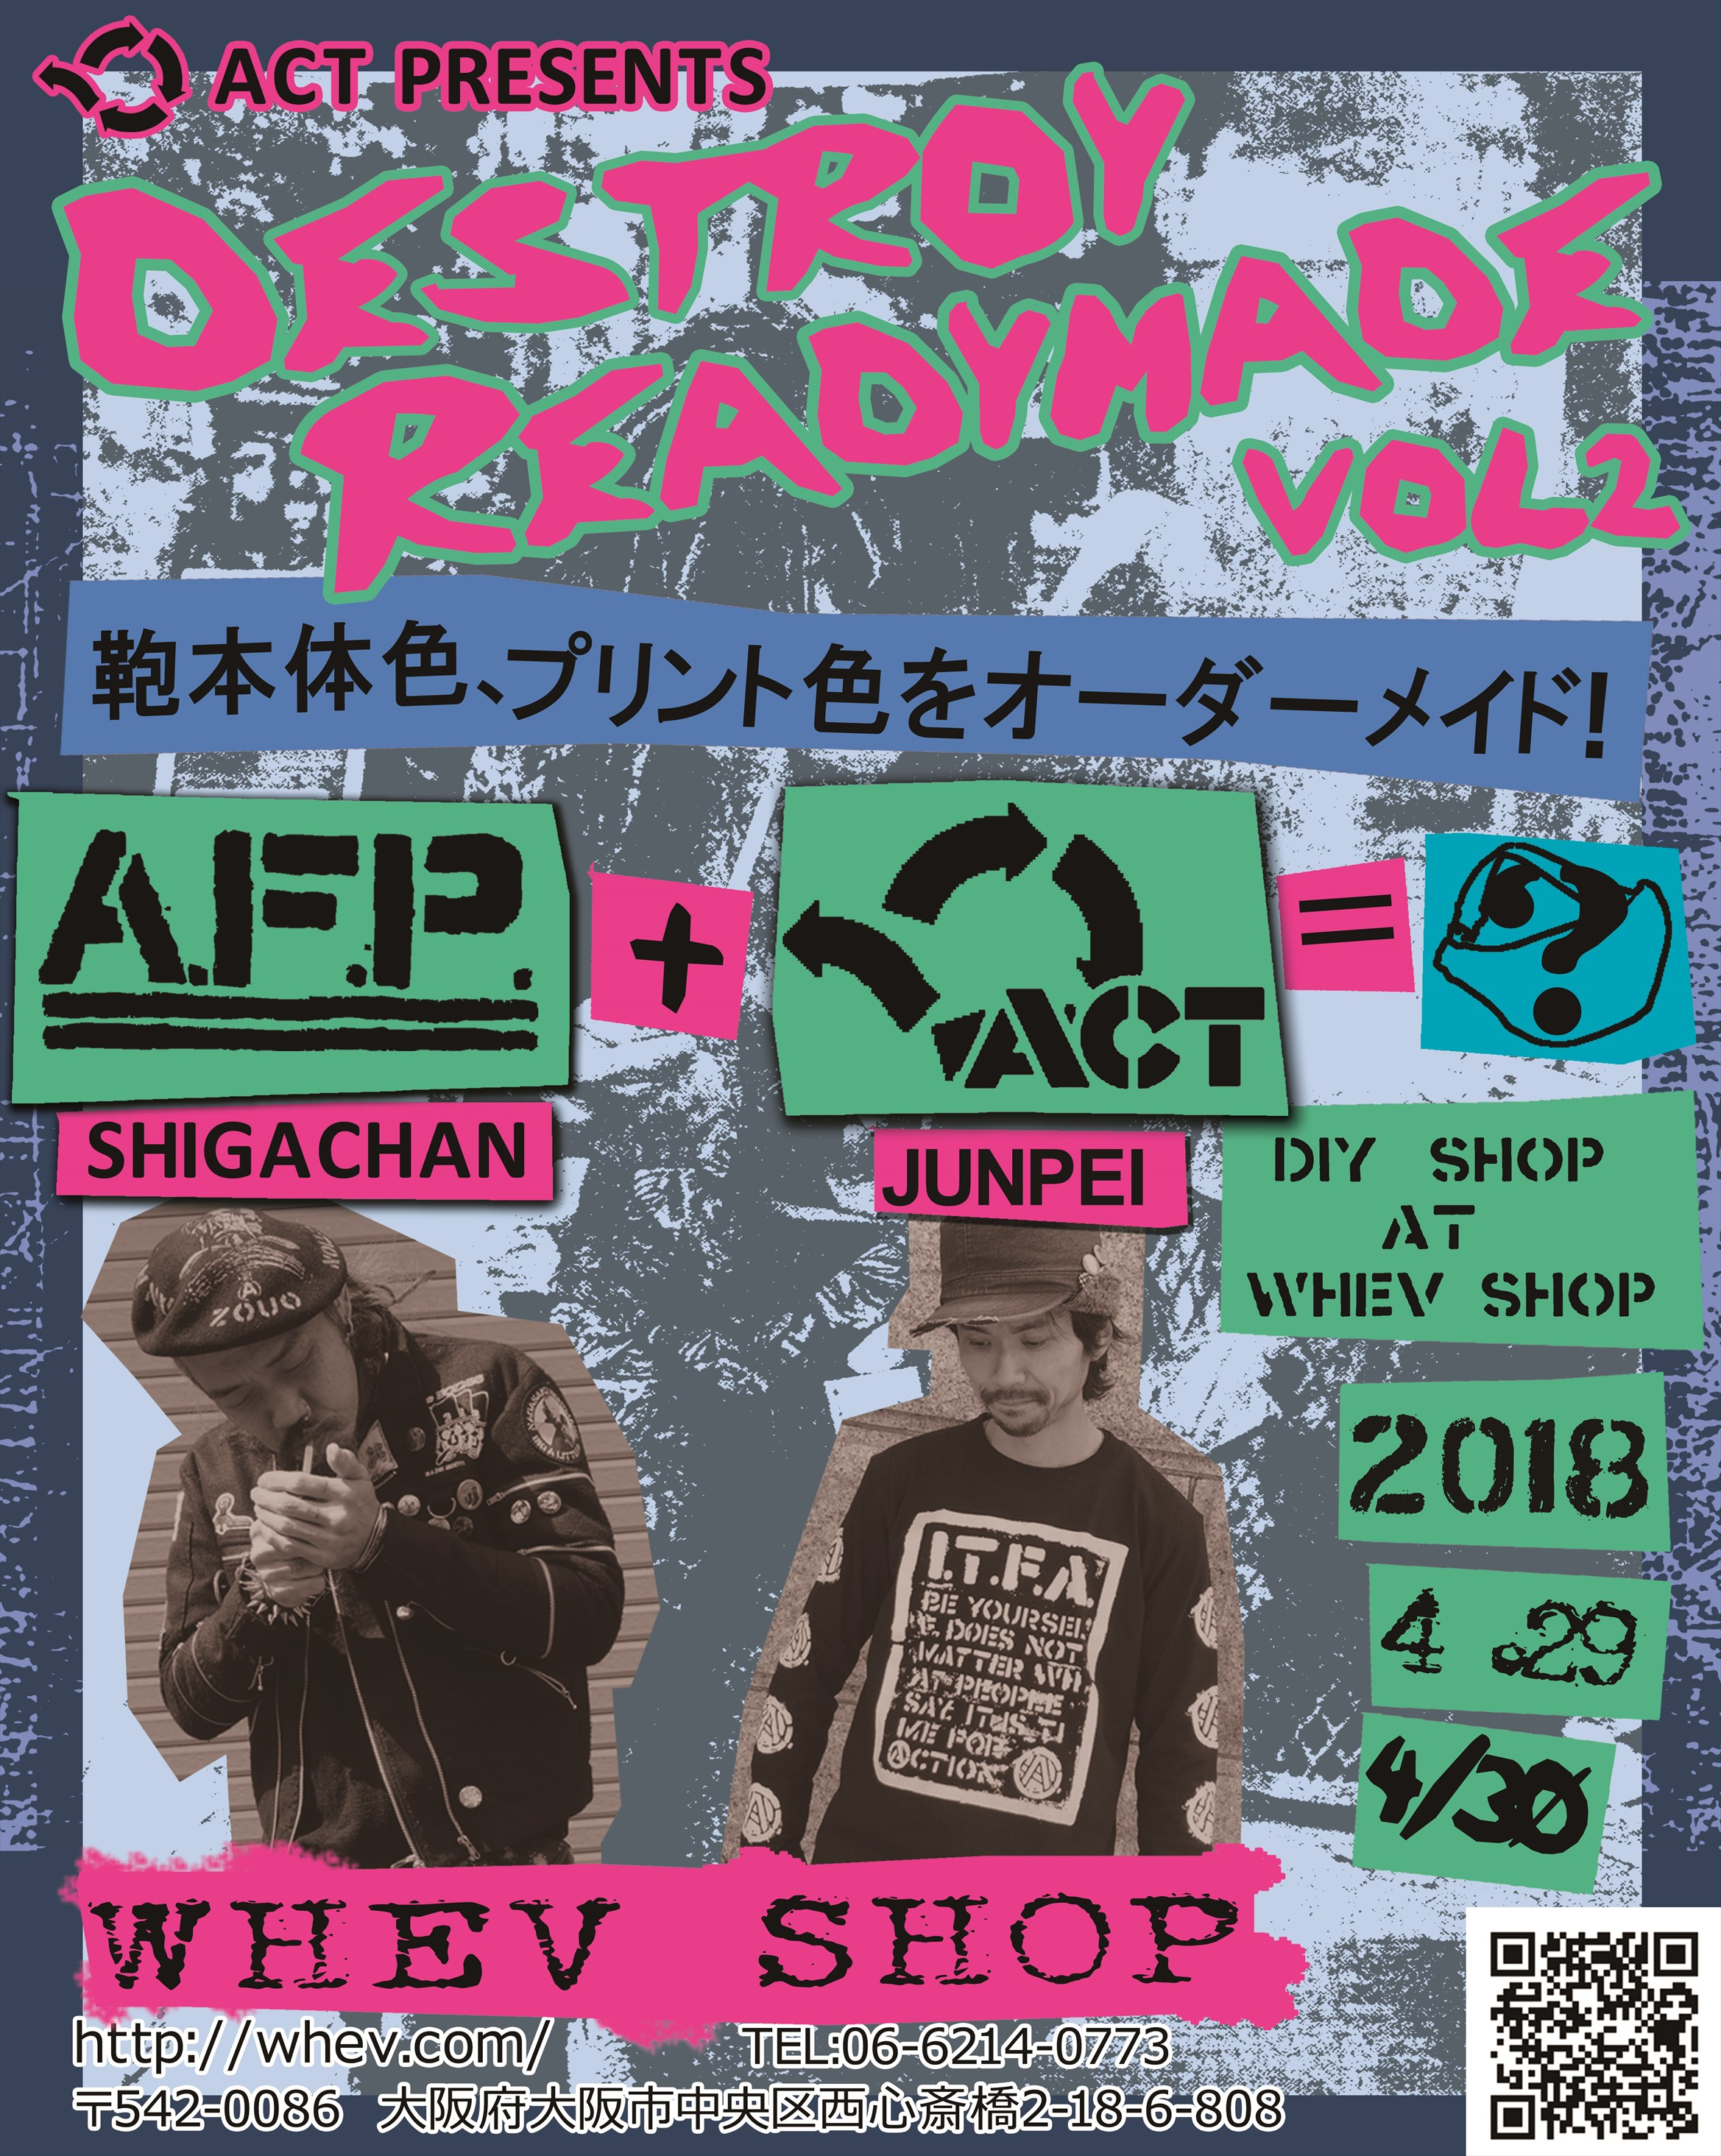 ACT presents [DESTROY READYMADE Vol.2] ACT&AFP DIY POP UP SHOP 4/29~4/30